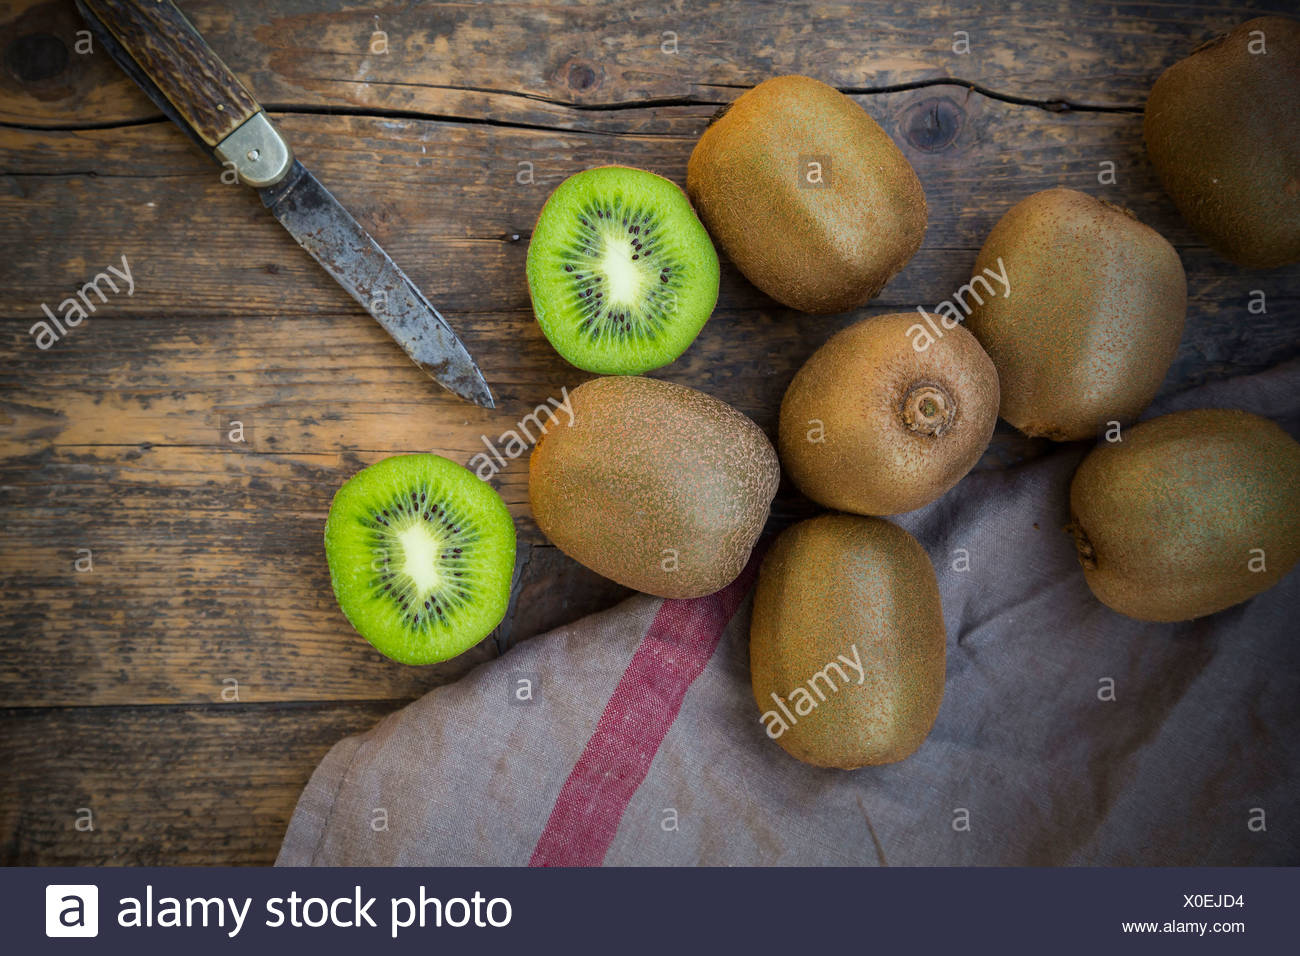 Kiwis (Actinidia deliciosa) and pocketknife on wooden table - Stock Image